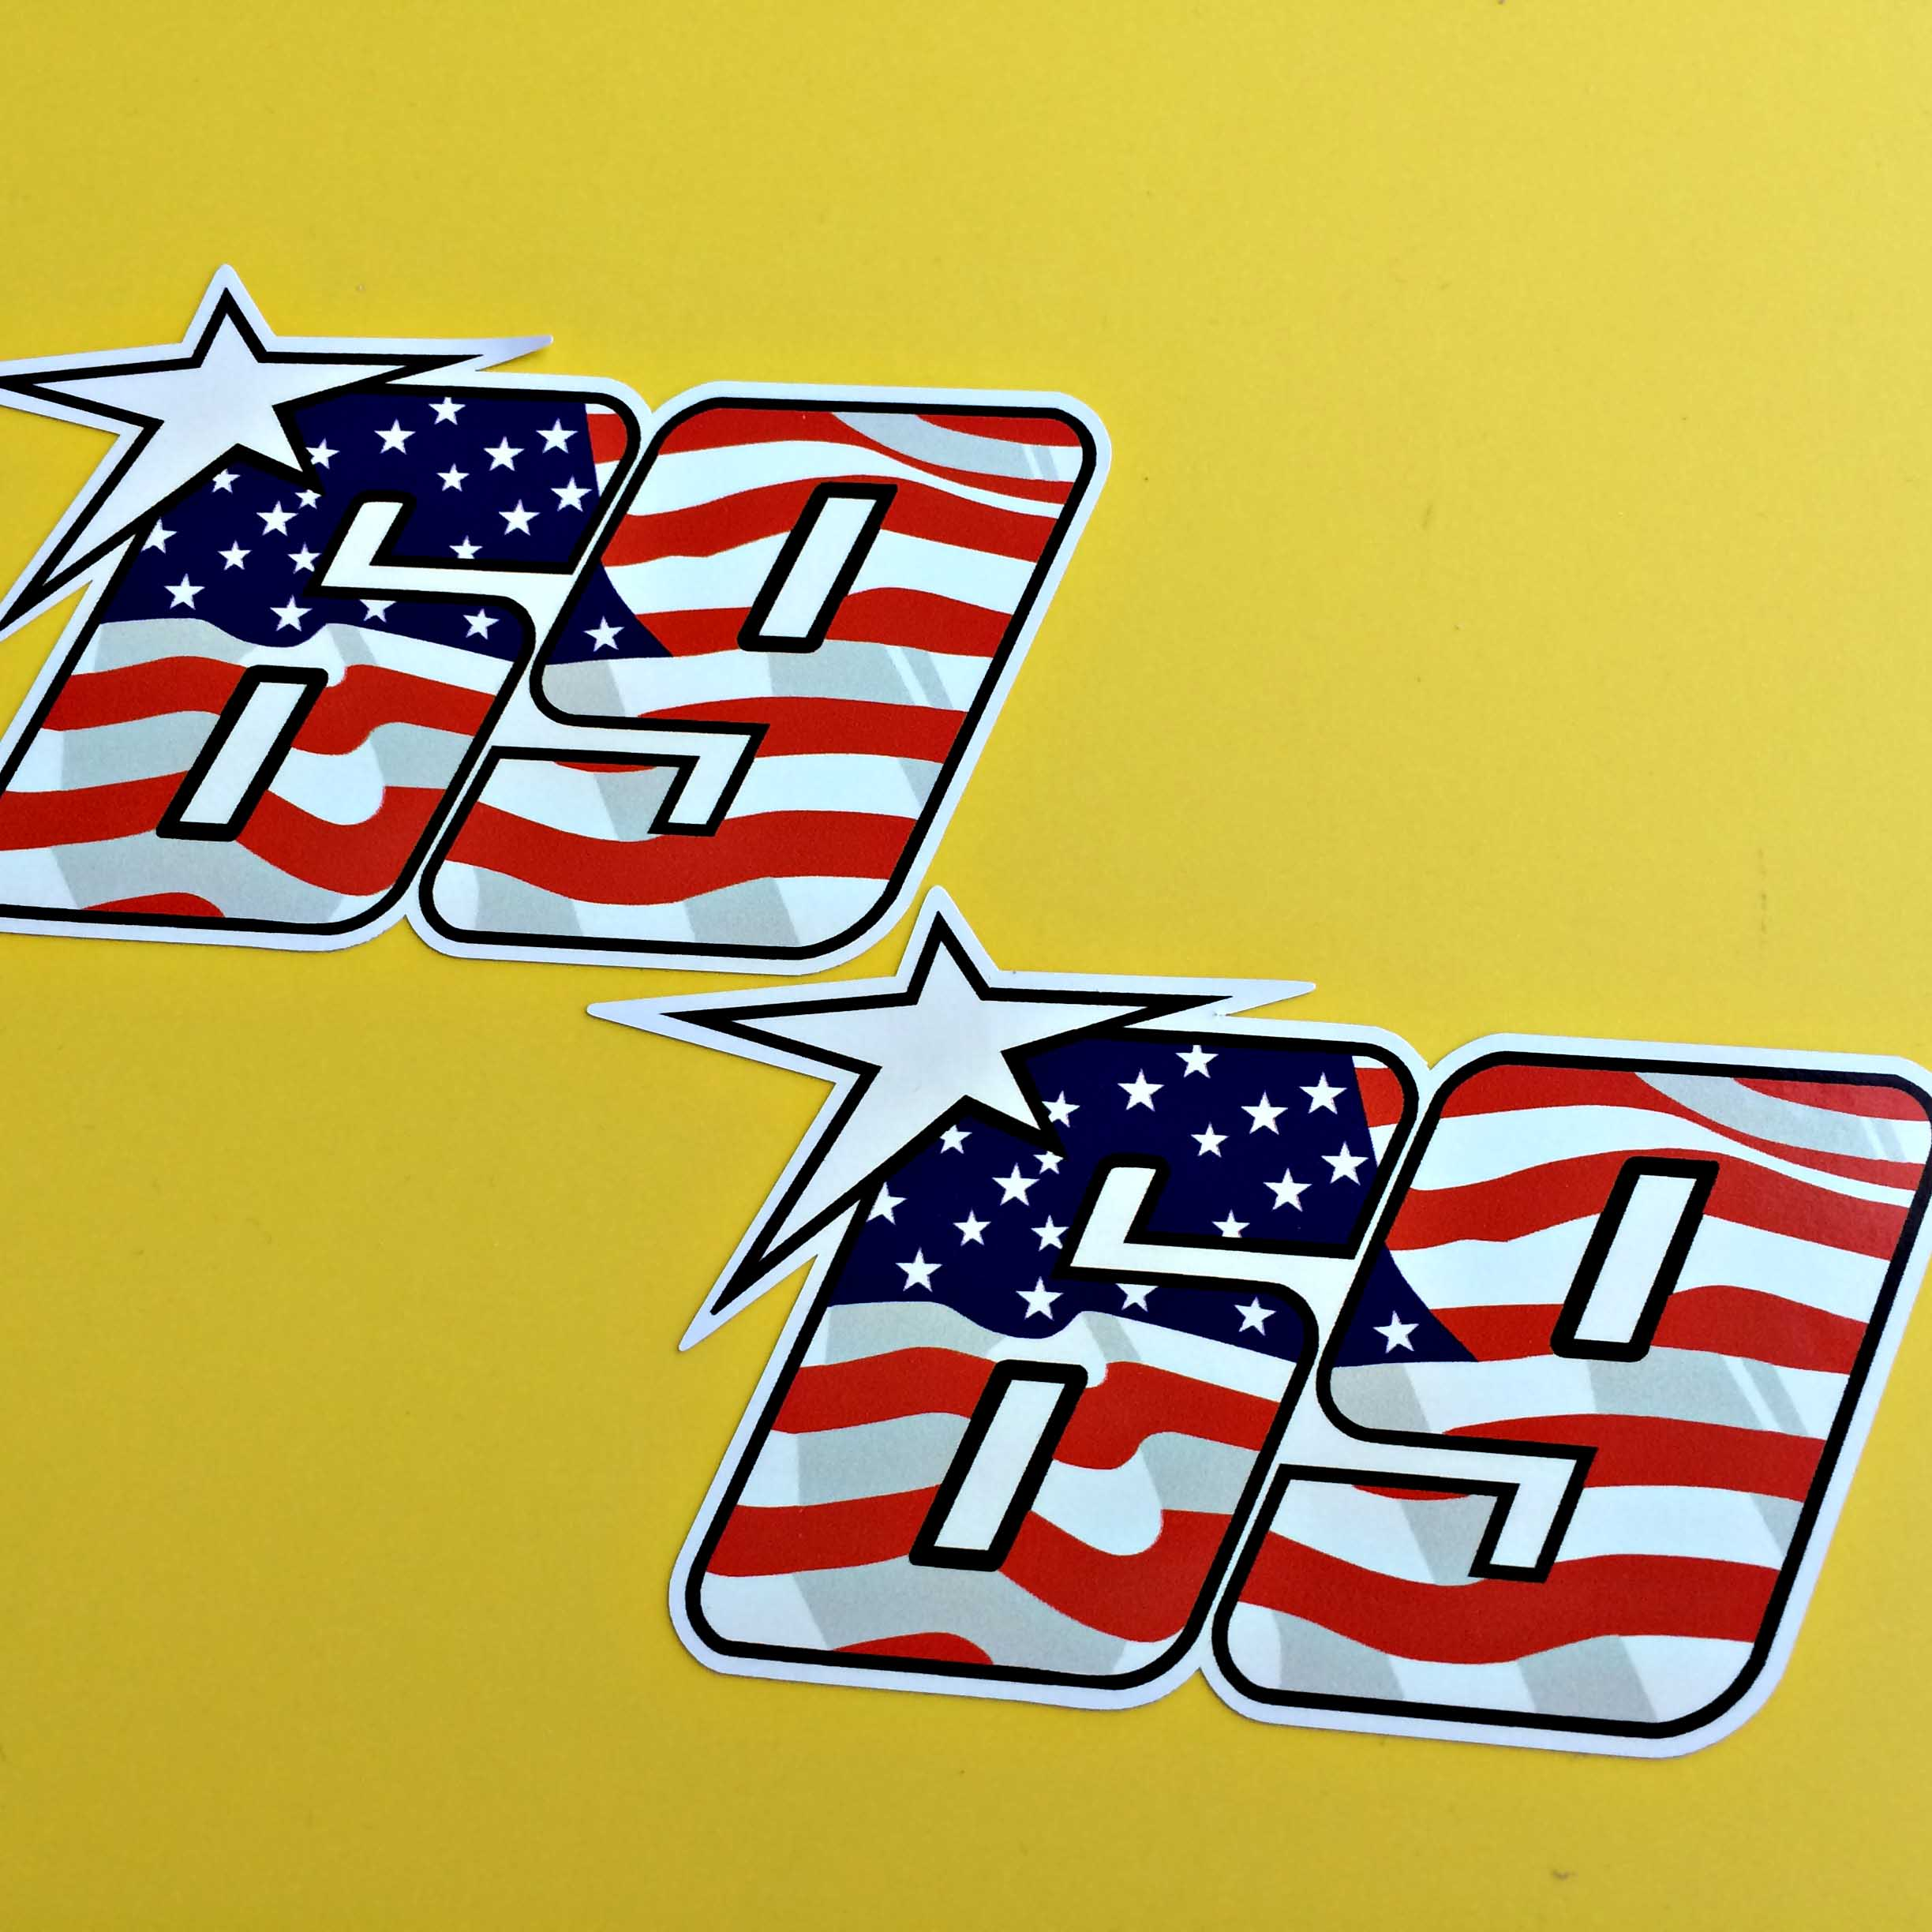 Stars and Stripes of America on the number 69. A white star is overlapping the top left corner.